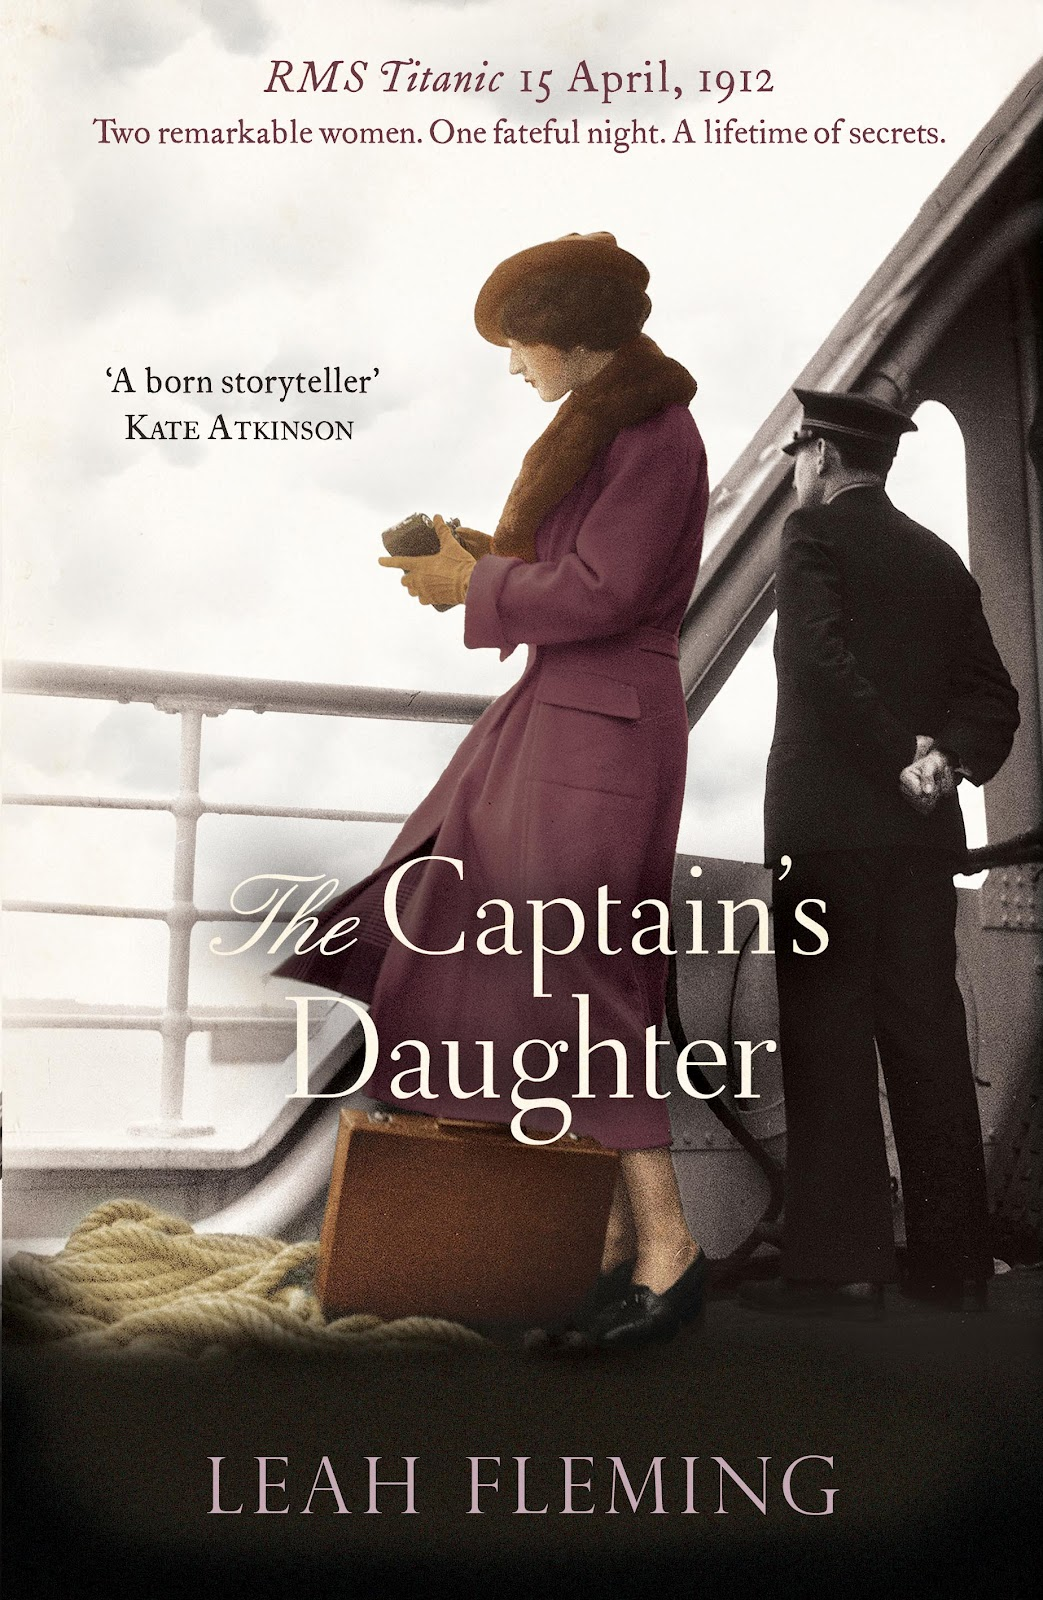 How to correctly determine the genre of the work The Captains Daughter